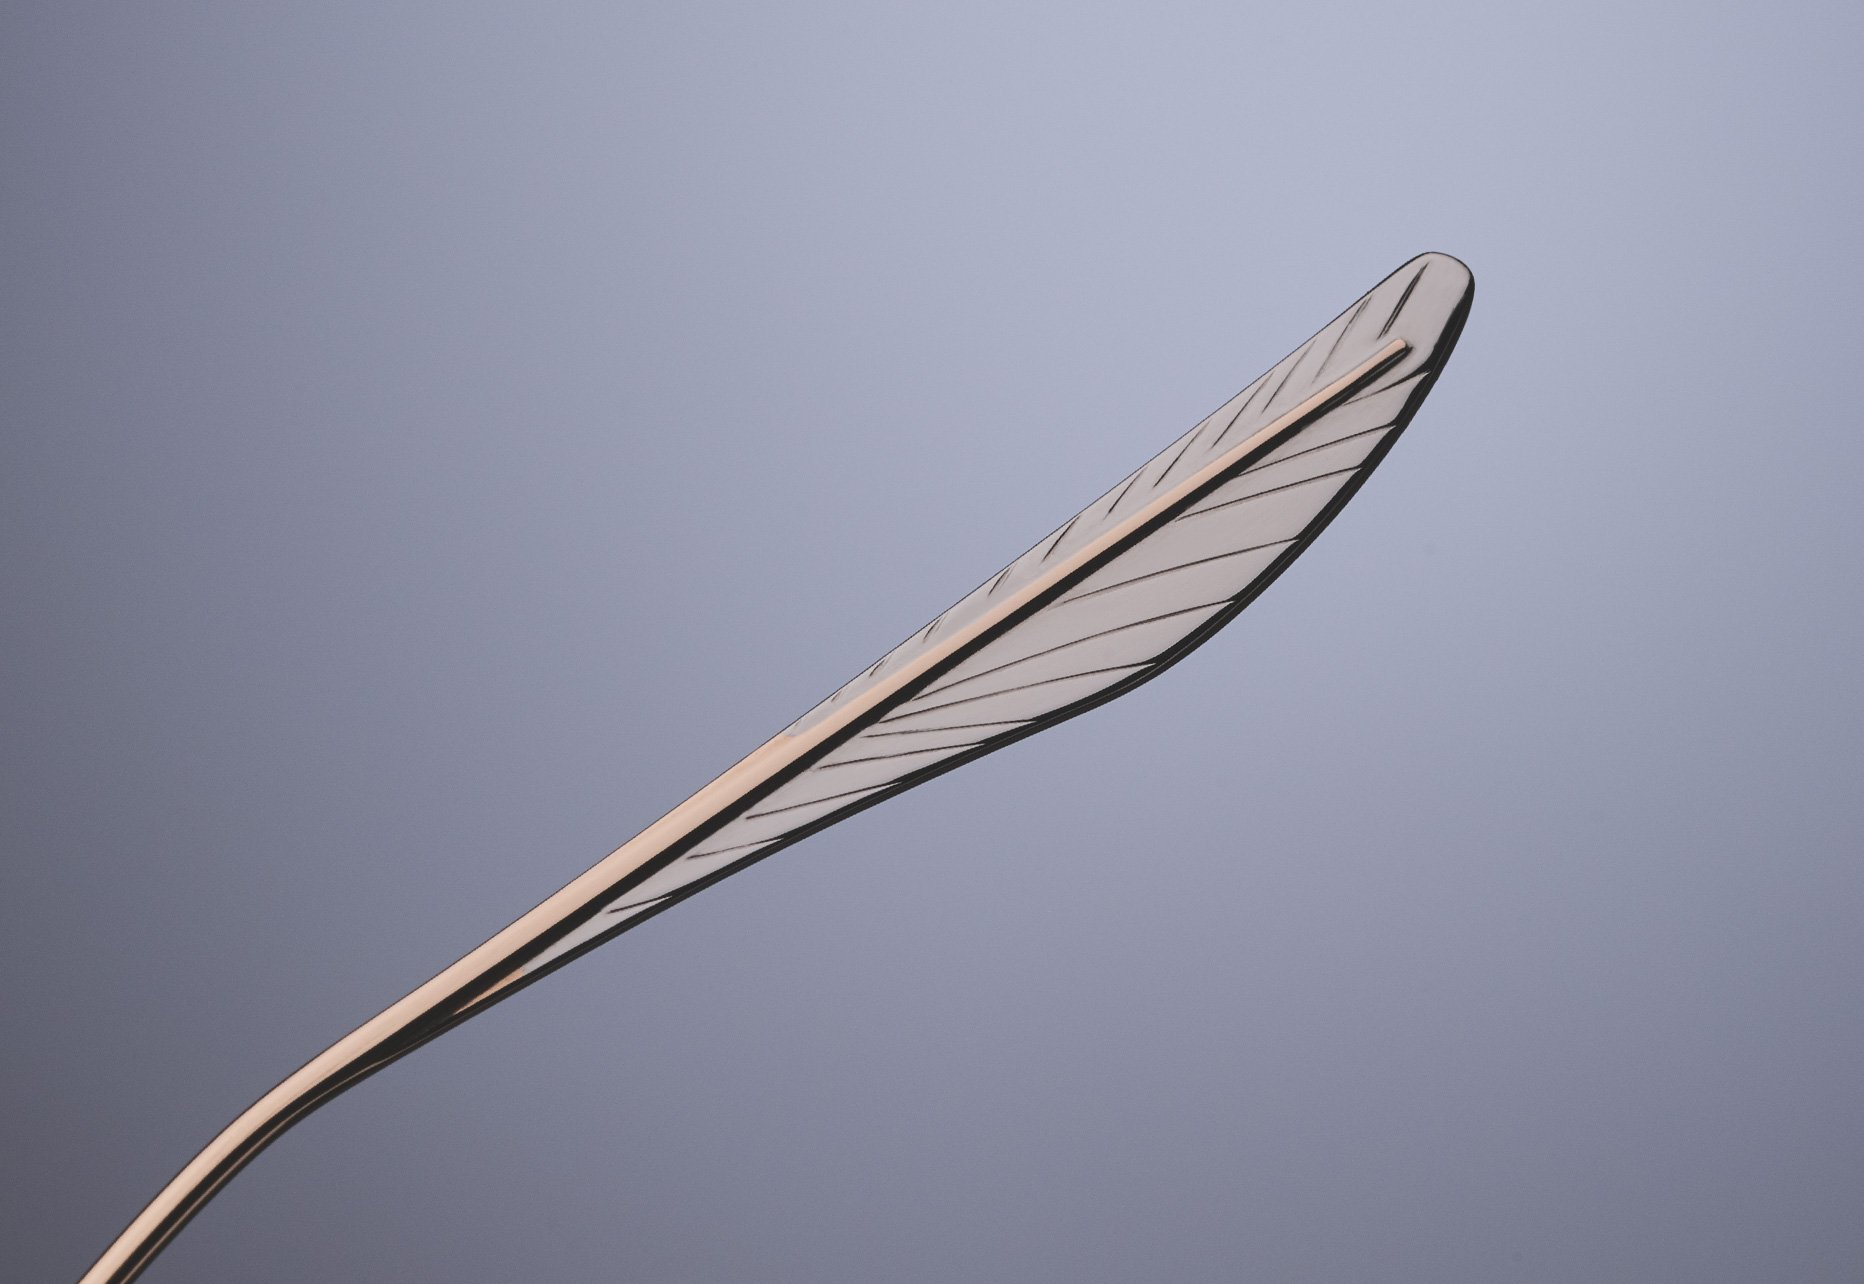 DITA RAVITTE DUAL-COLOR TITANIUM TEMPLE TIP DESIGN DELICATELY ETCHED TO RESEMBLE A FEATHER